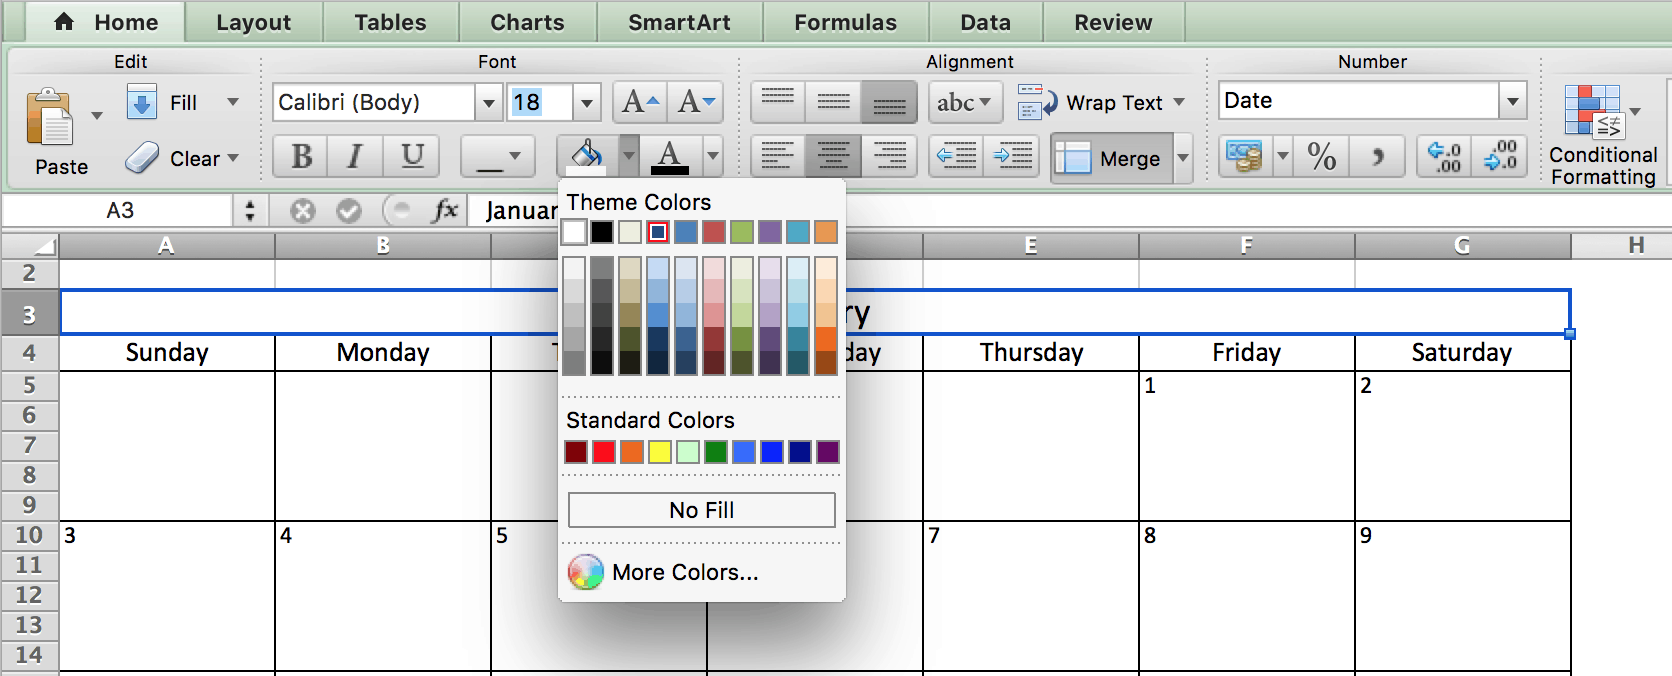 Ediblewildsus  Gorgeous Make A  Calendar In Excel Includes Free Template With Engaging Choosing Colors  Calendar In Excel With Beautiful Free Download Microsoft Excel  Also Excel How To Lock Formula In Addition Excel Vba Script And Excel Separate Cell Contents As Well As Clustered Stacked Bar Chart Excel Additionally Excel Normal Distribution Chart From Smartsheetcom With Ediblewildsus  Engaging Make A  Calendar In Excel Includes Free Template With Beautiful Choosing Colors  Calendar In Excel And Gorgeous Free Download Microsoft Excel  Also Excel How To Lock Formula In Addition Excel Vba Script From Smartsheetcom